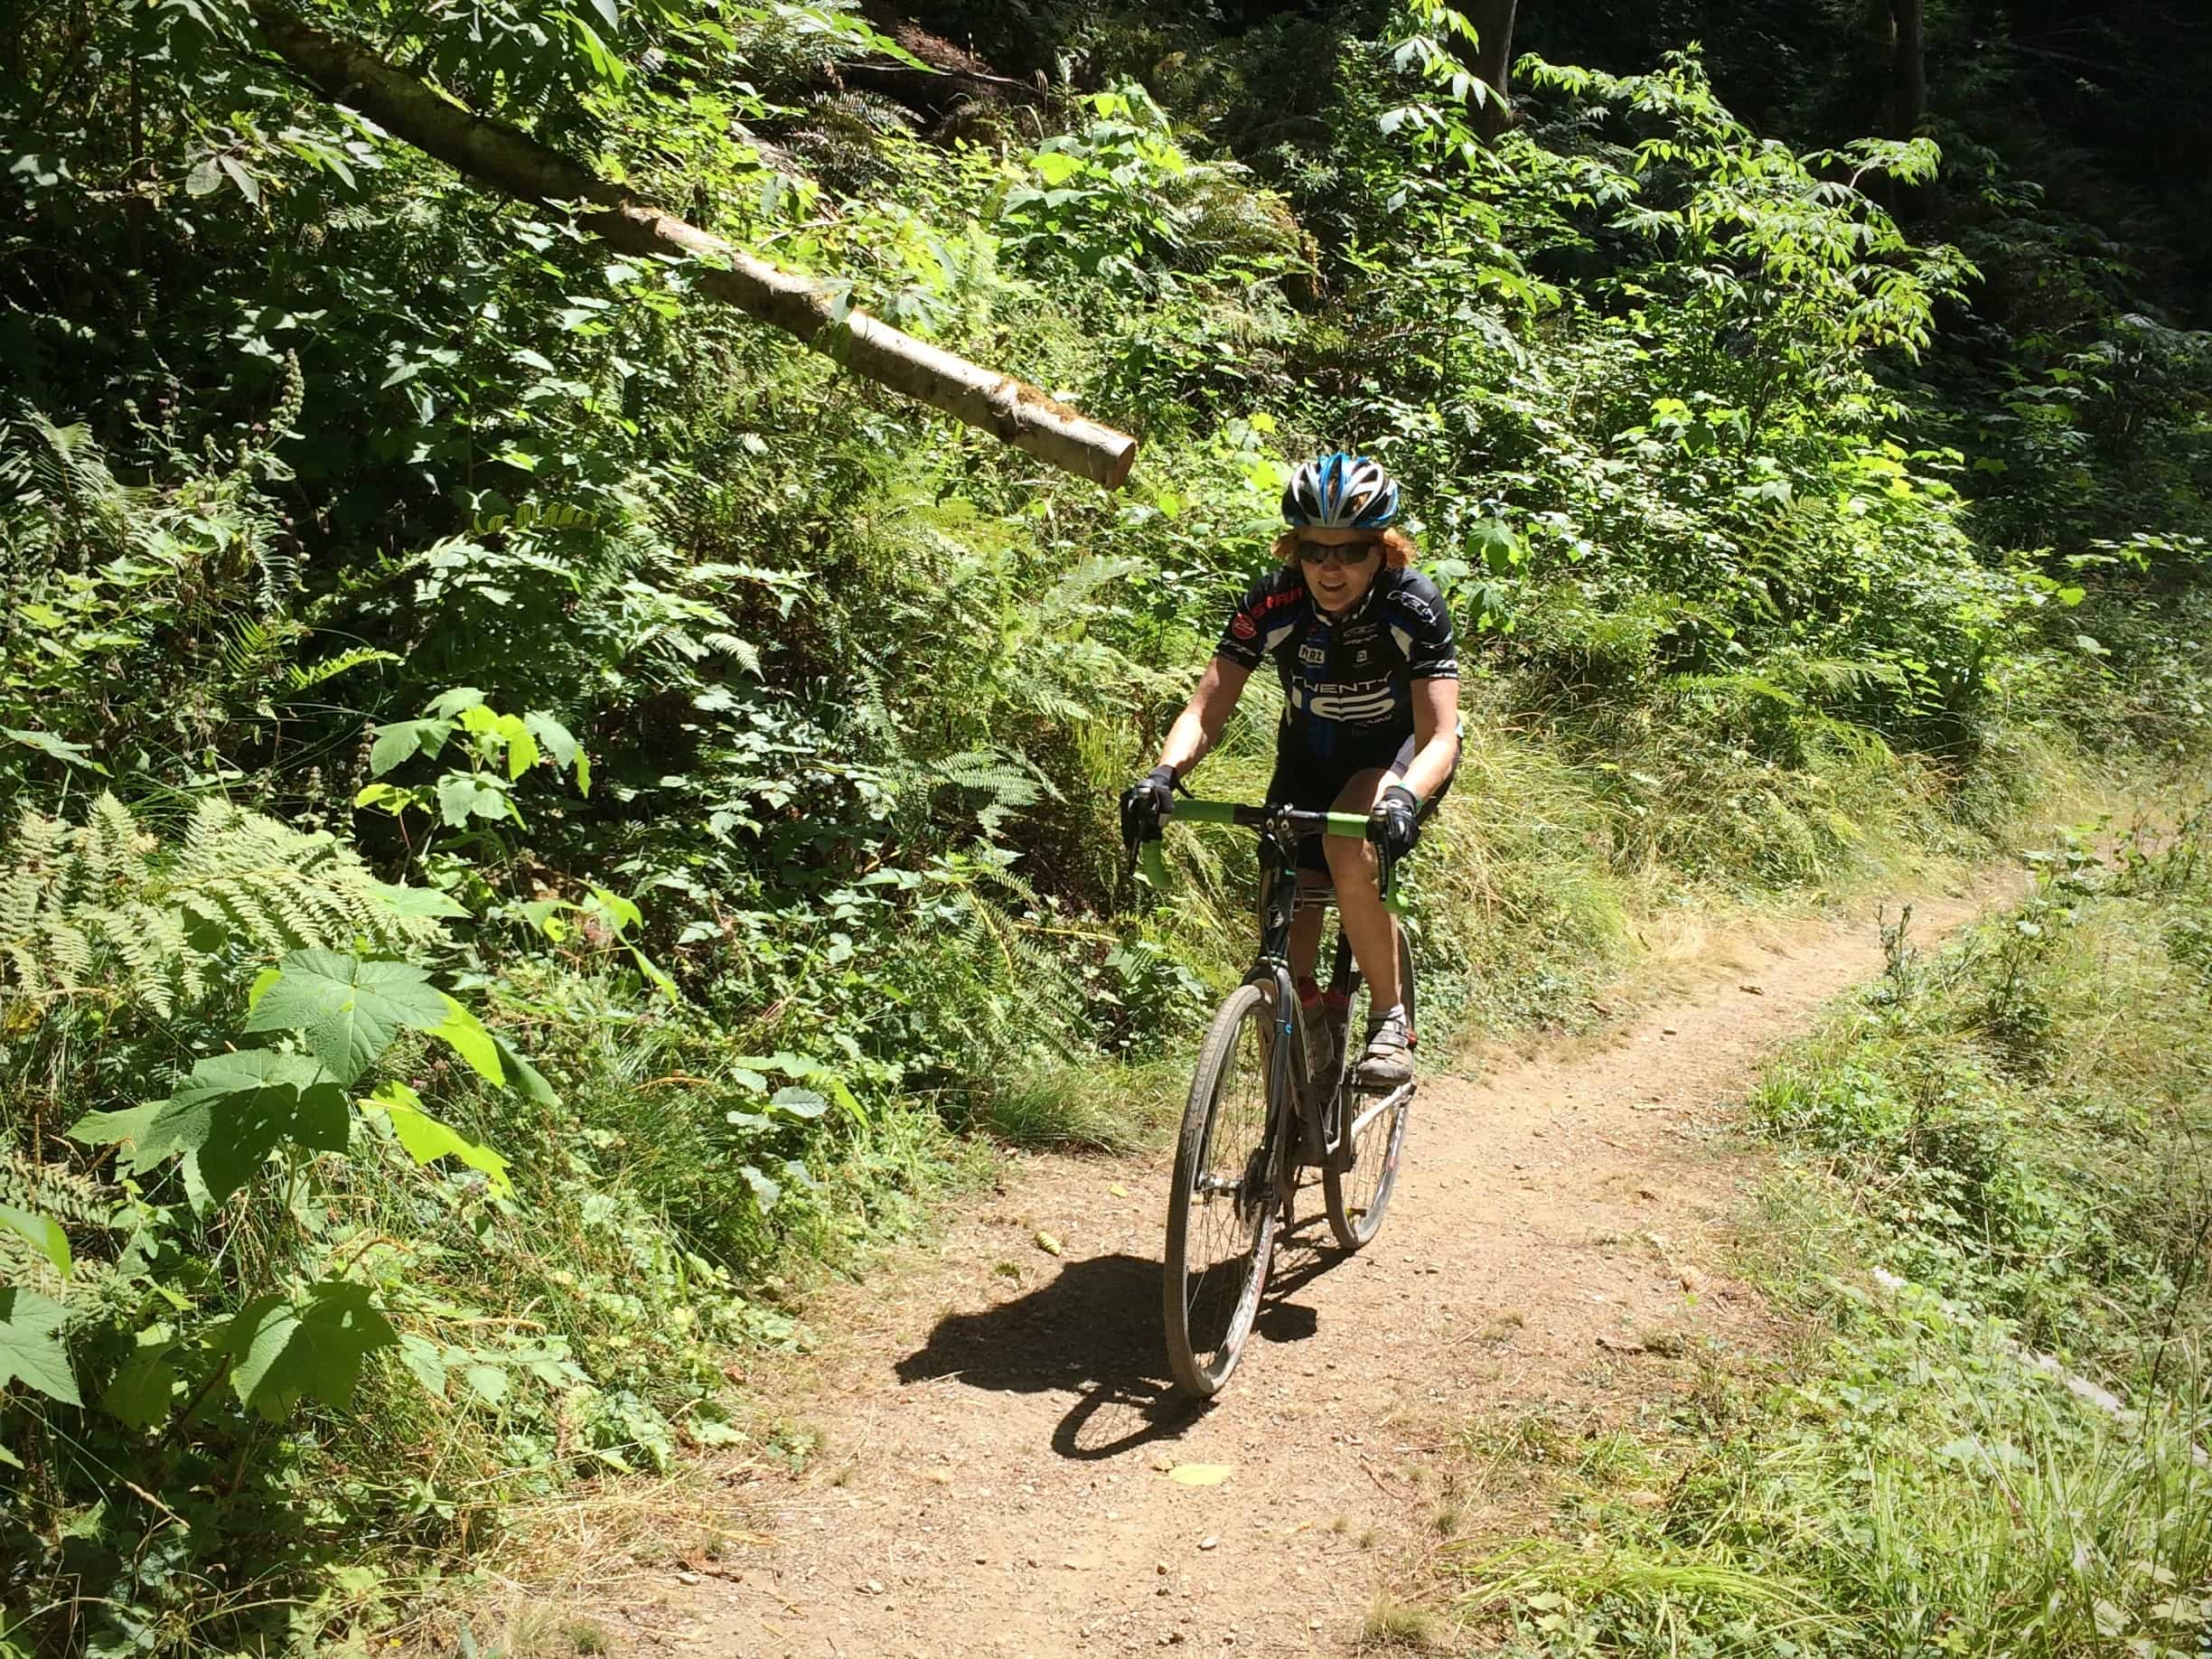 Gravel cyclist riding the single track of Streelow trail in Prairie Creek Redwoods state park in California, near Crescent City.